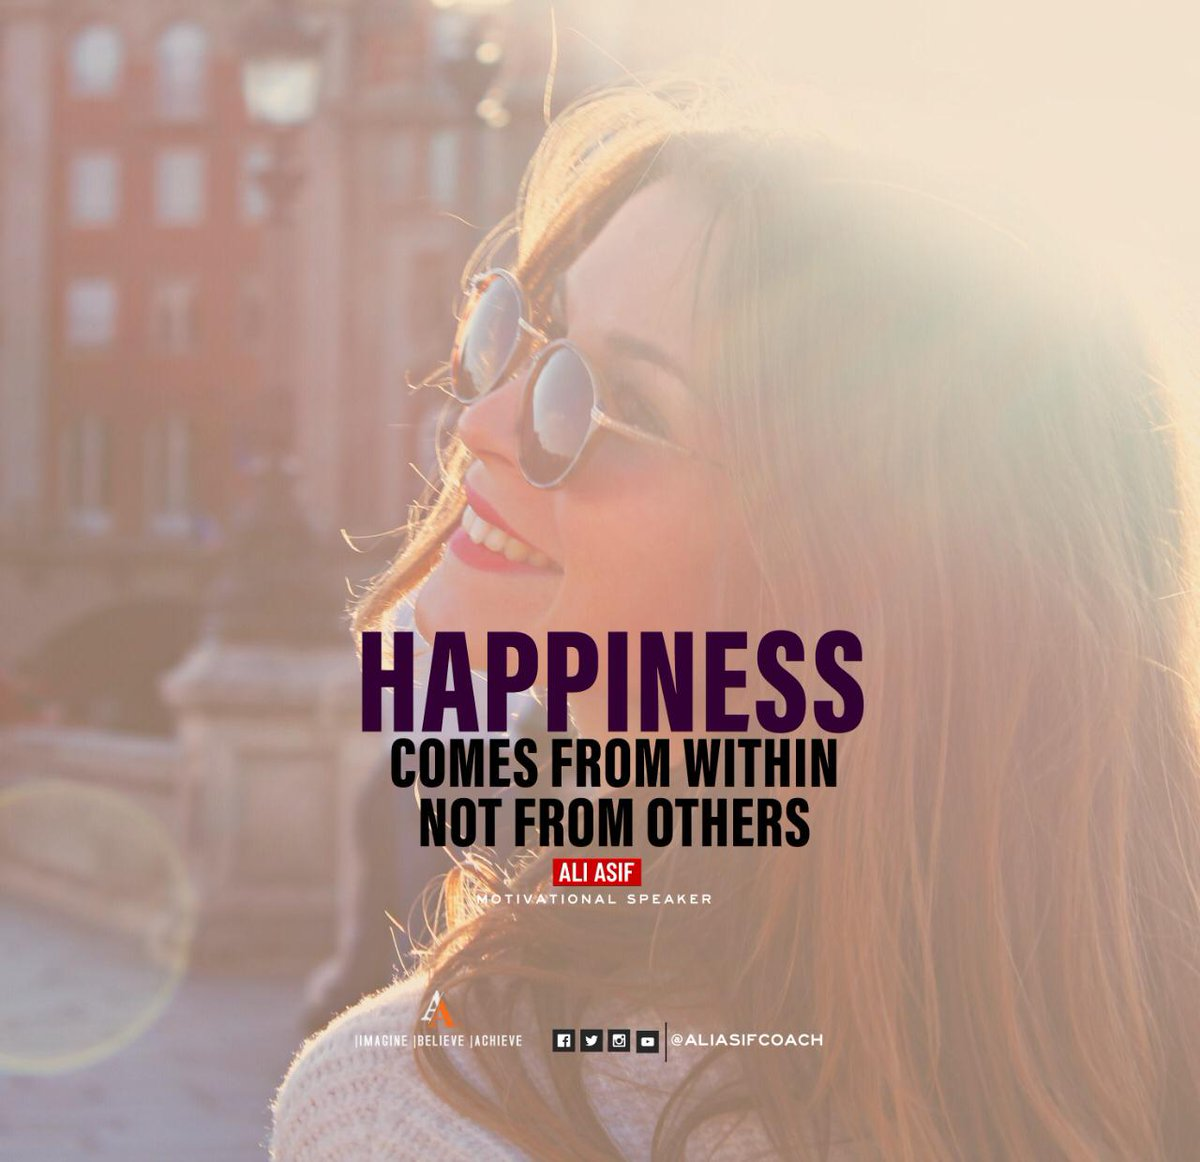 Happiness comes from within not from others. #FridayThoughts #FridayMotivation #BlessedFriday #FridayFeeling